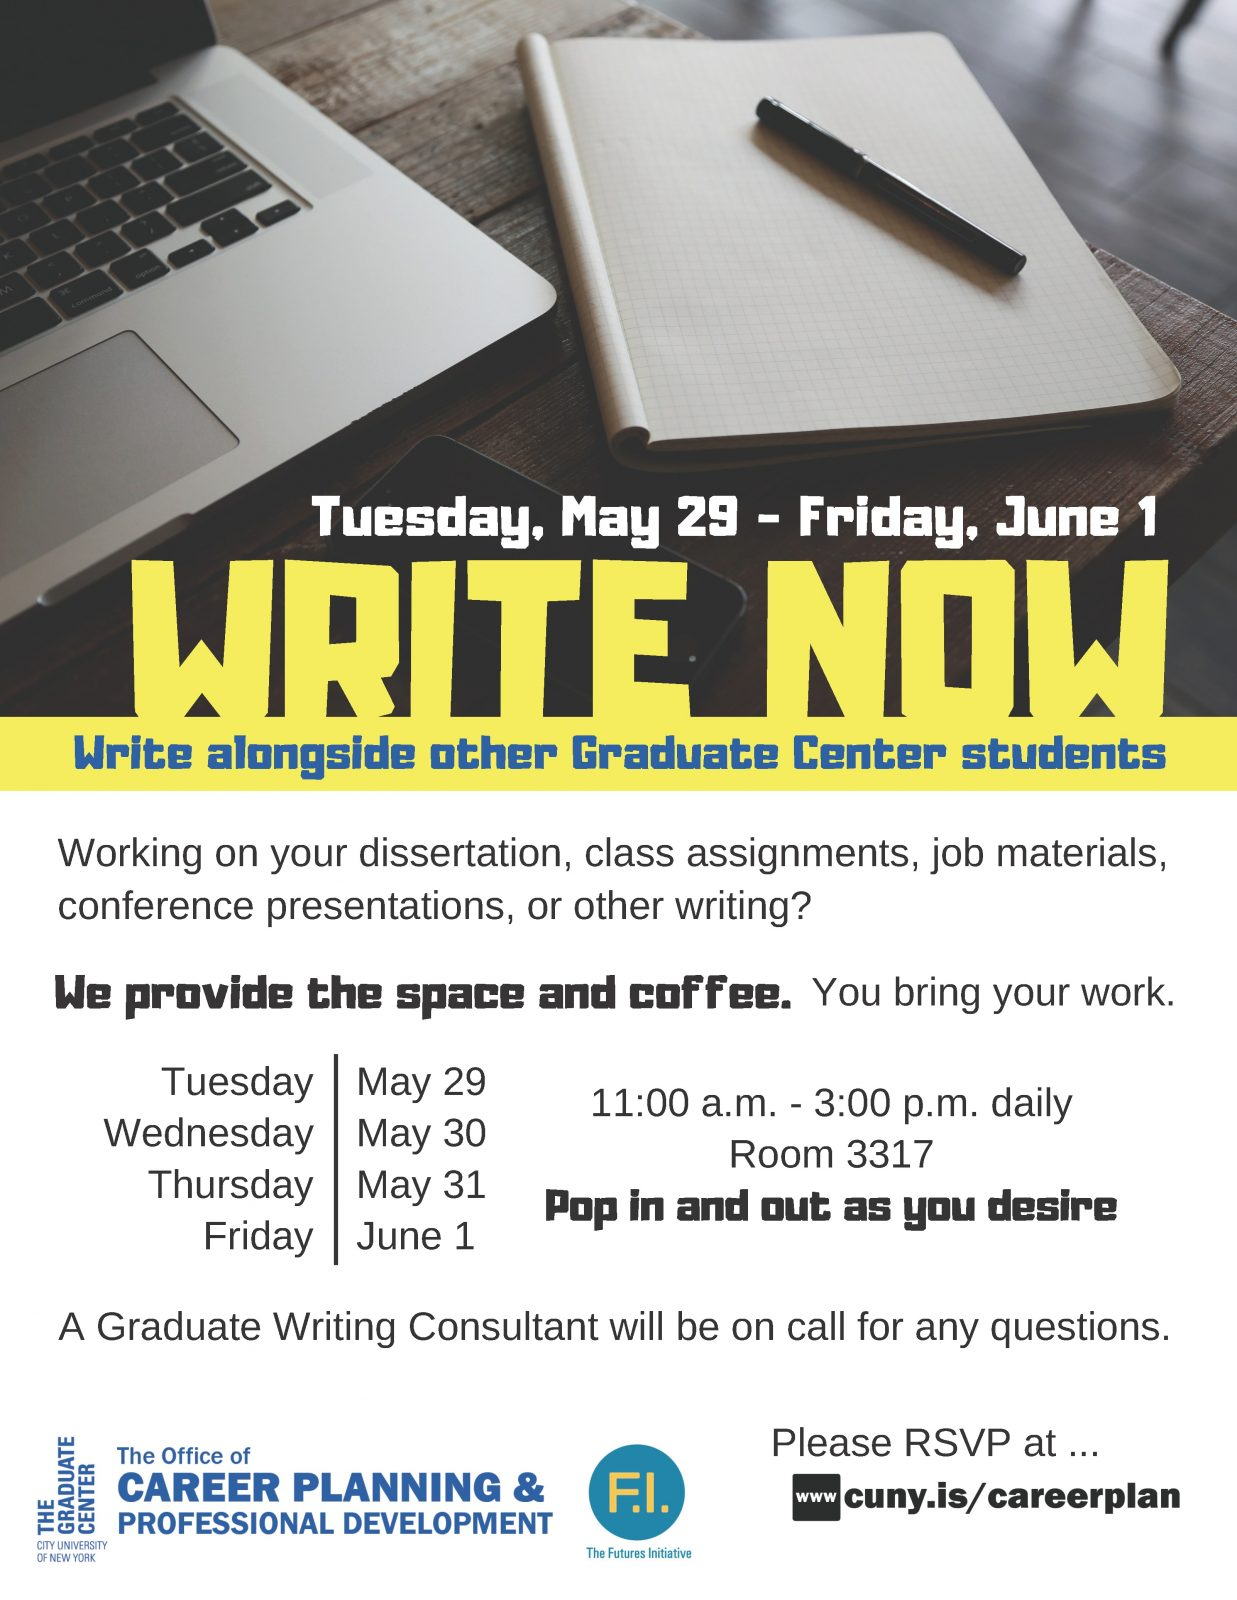 Write Now: Writing Retreat for GC Students